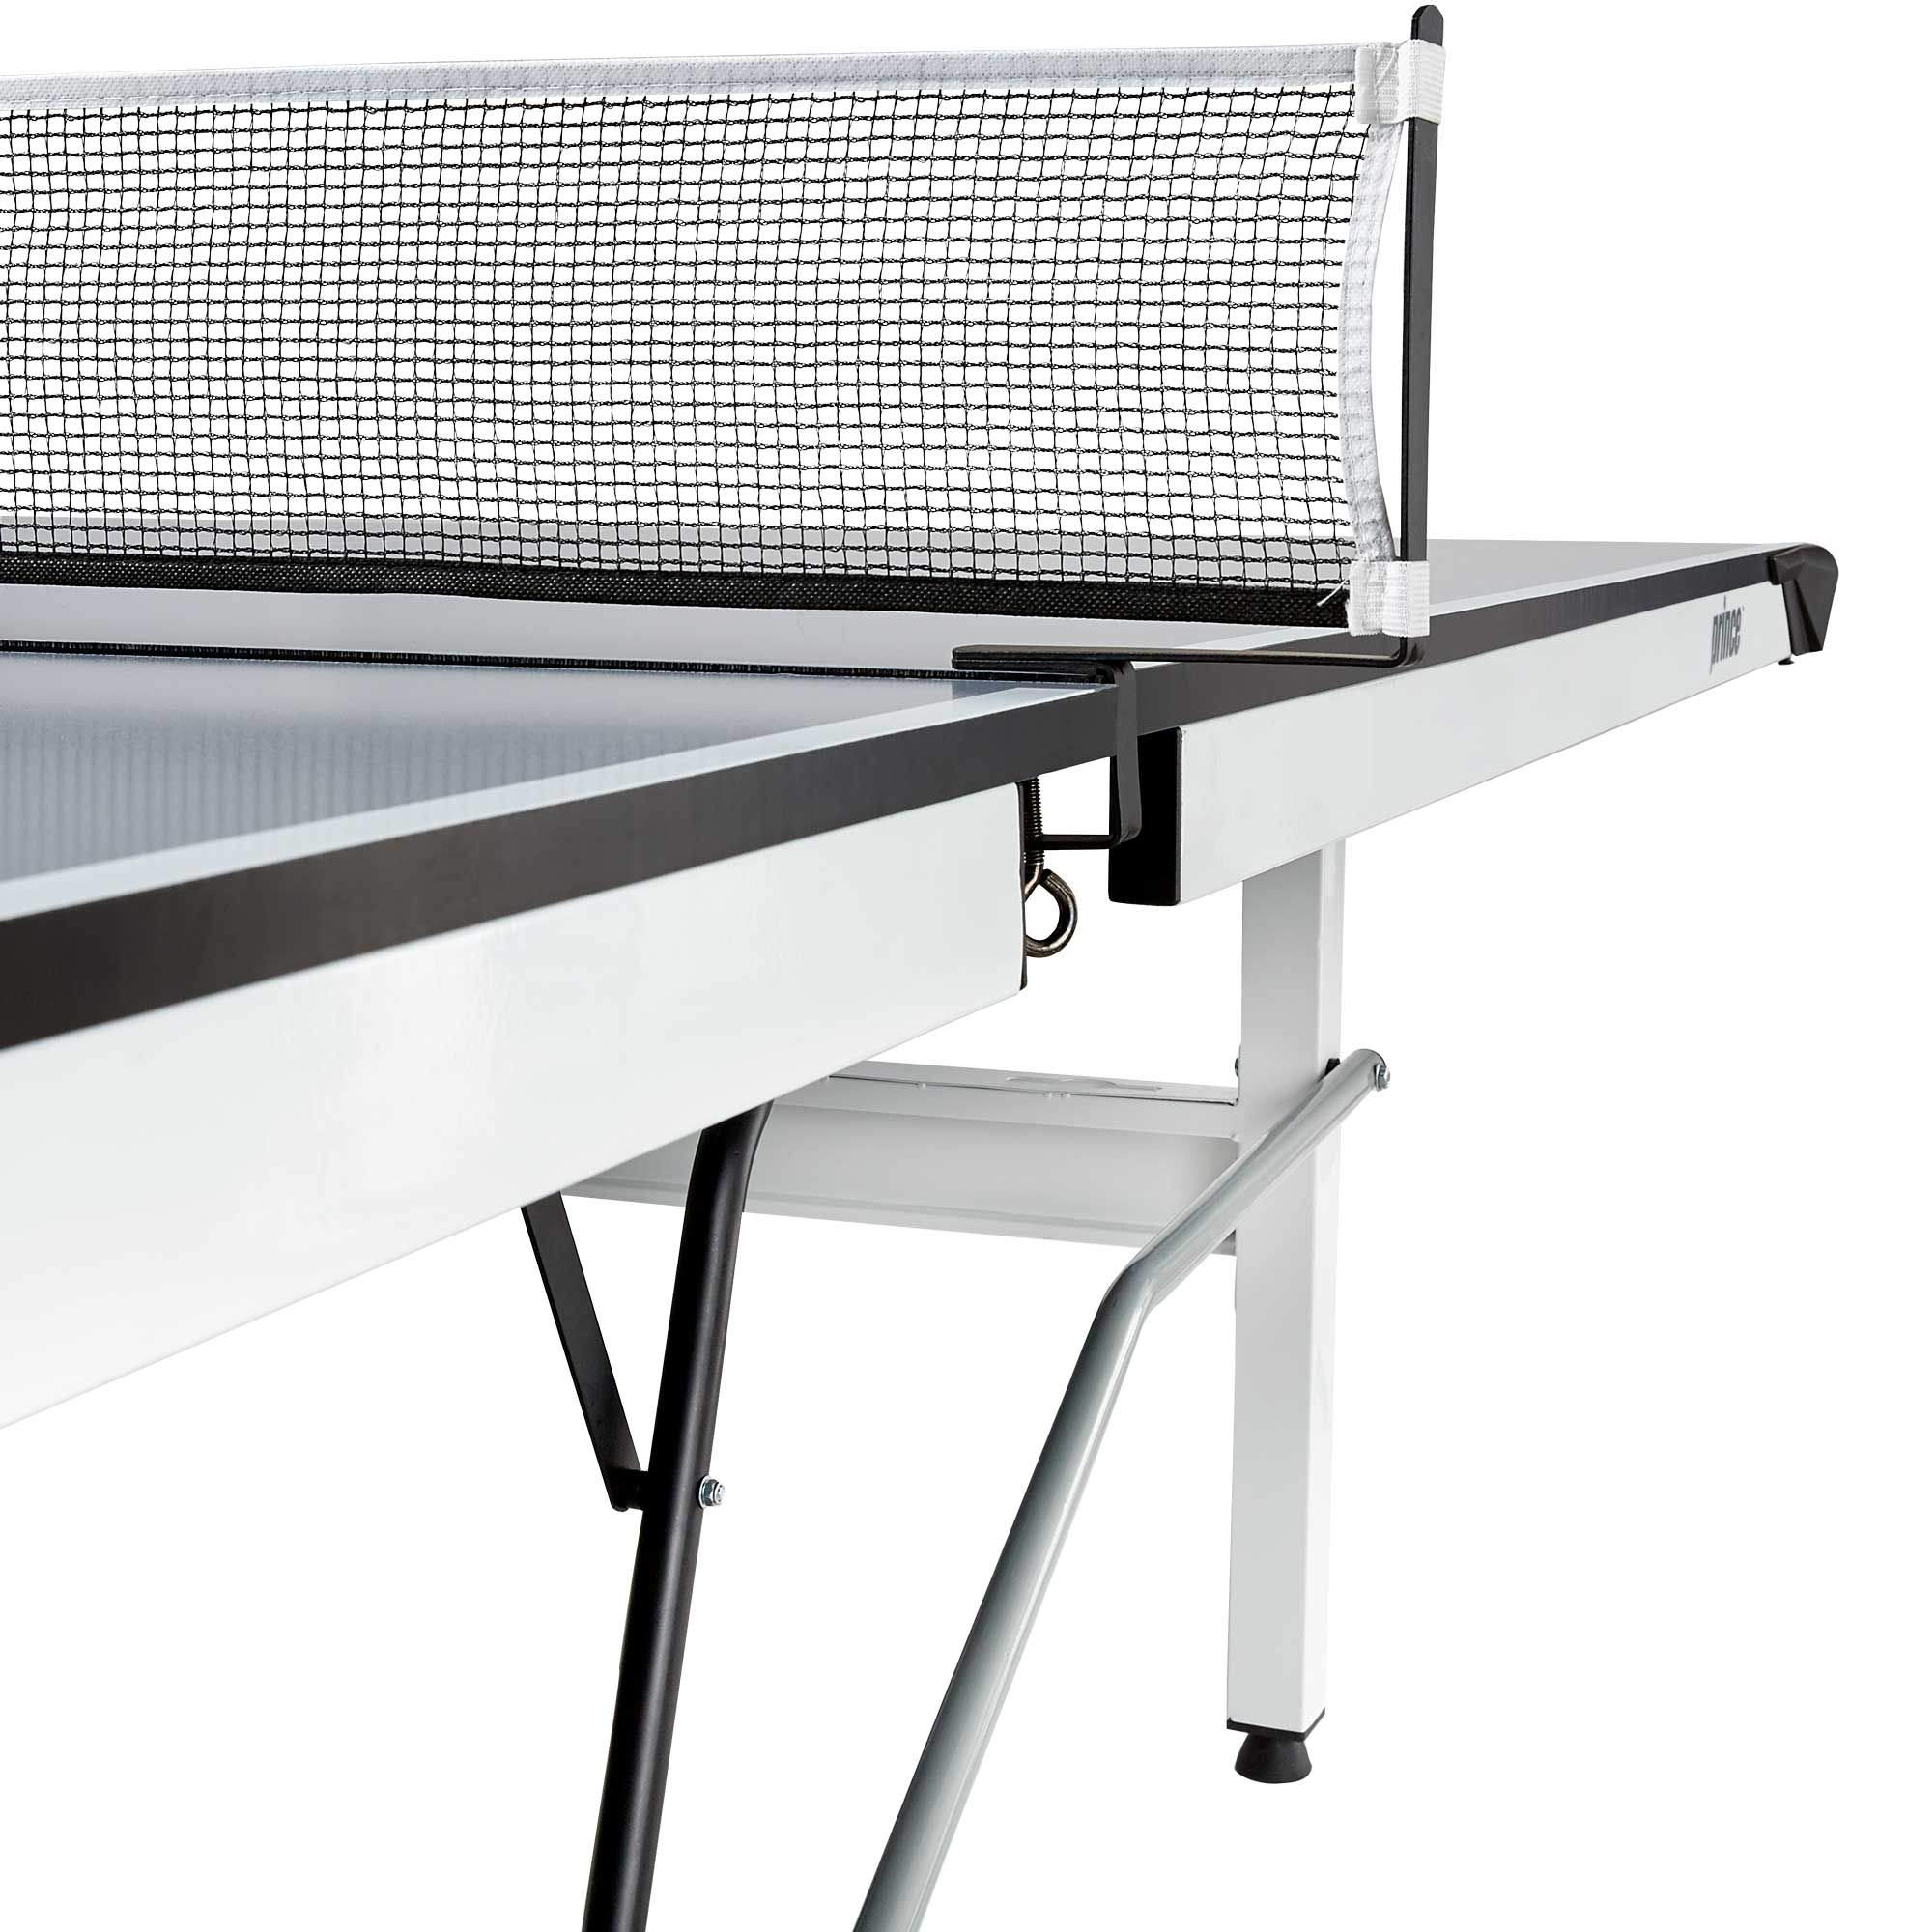 Prince Classic Table Tennis Net & Post Set